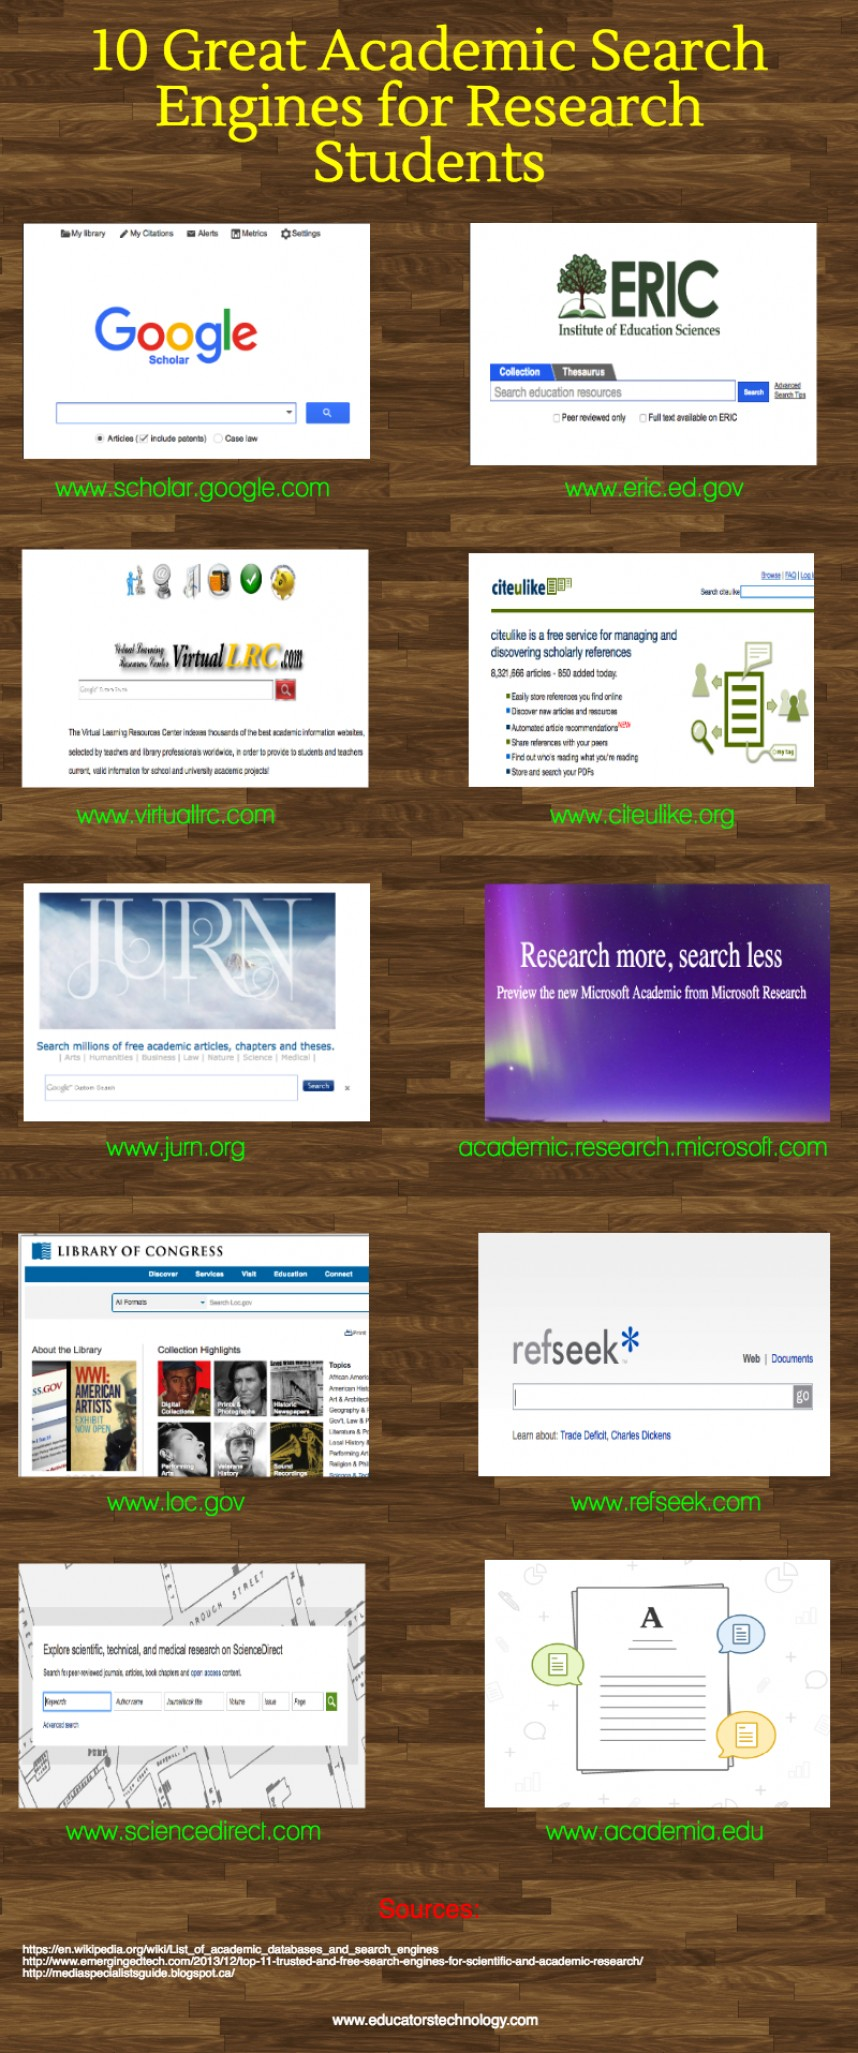 011 College Research Paper Websites Magnificent Academic